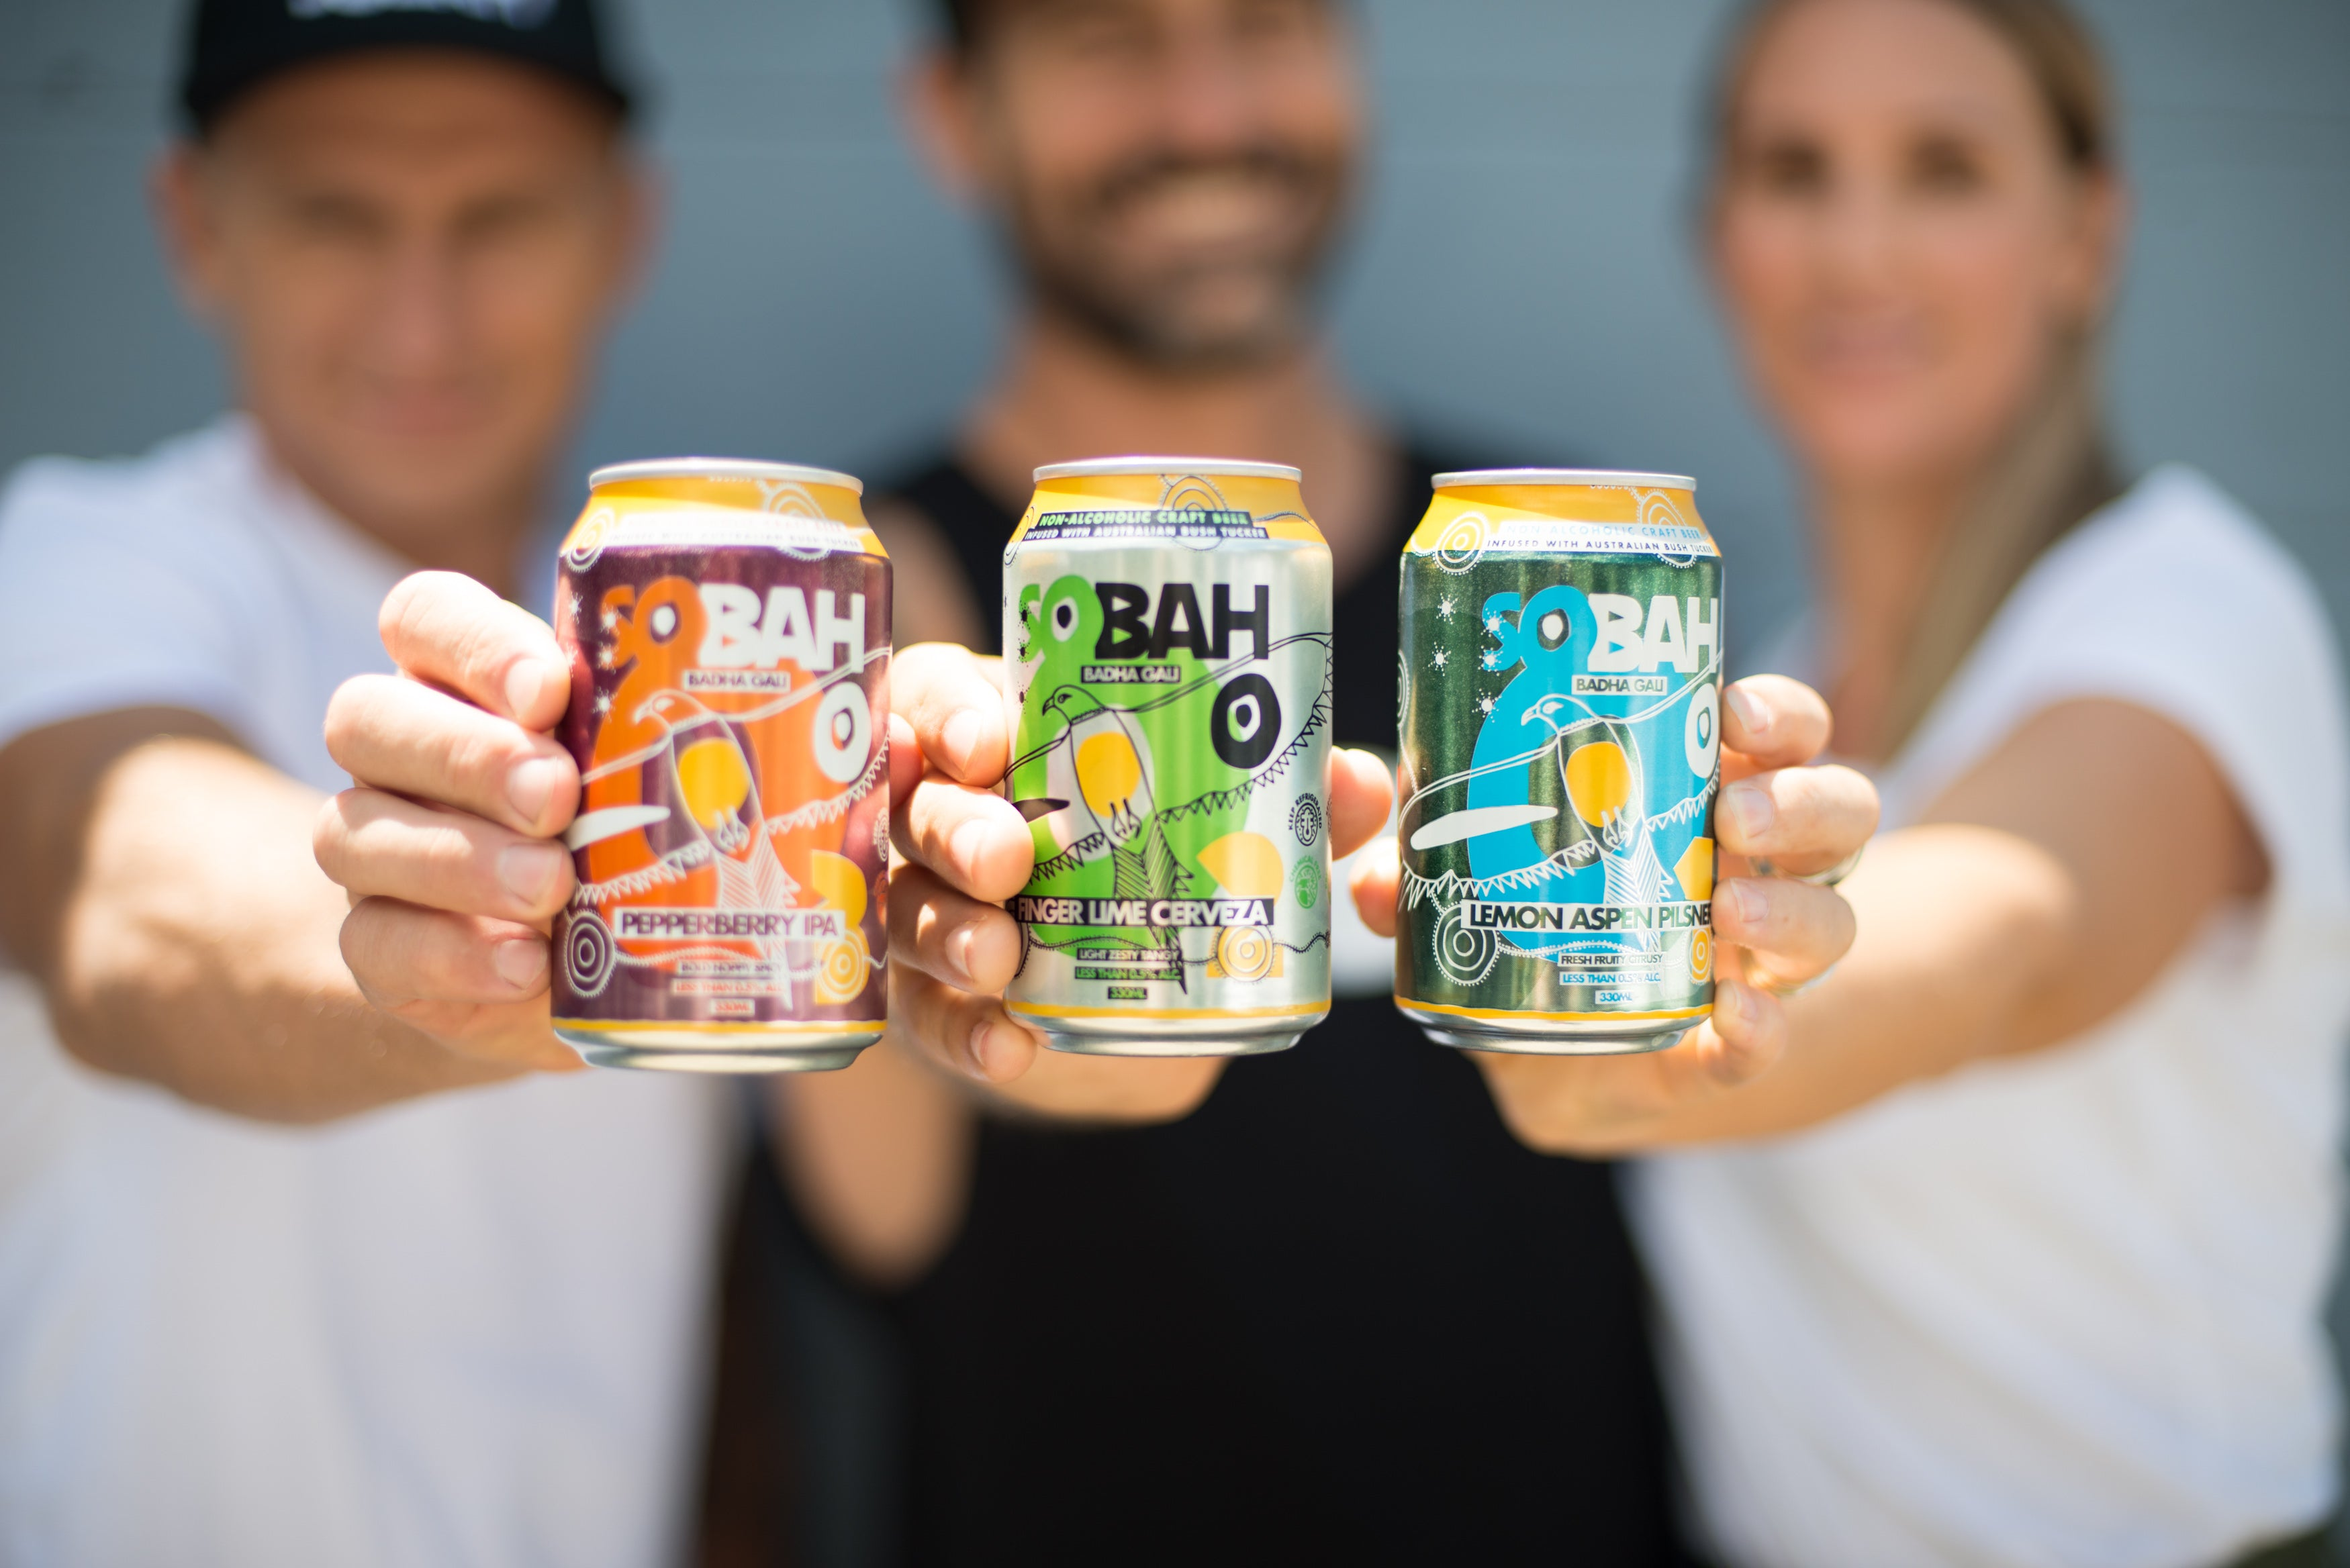 Sobah nonalcoholic craft beer